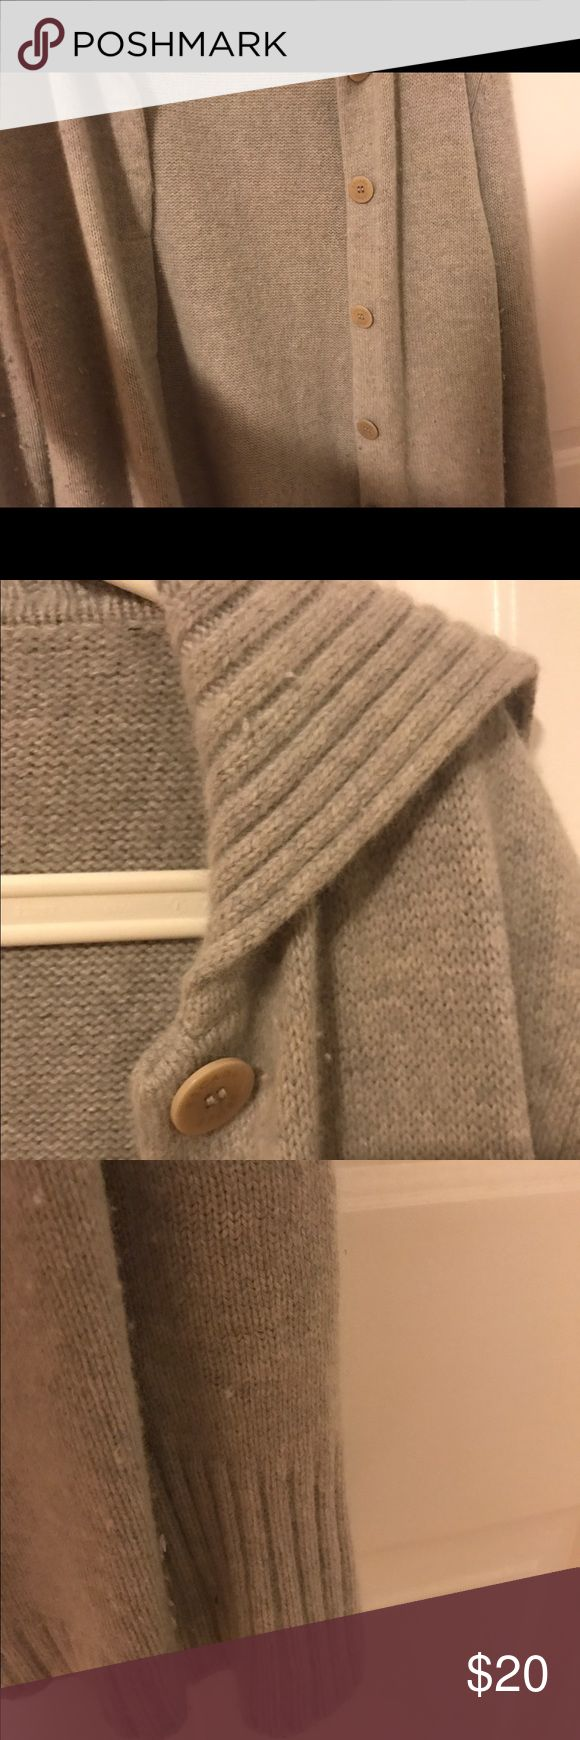 Escada Sport Made in Italy cardigan One of my favorite cardigans, made in Italy by Escada sports, is ideal for very cold winters and can be worn on top of anything. Looks really good to wear on leggings as well as dresses. For more info or questions, please comment! Sweaters Cardigans